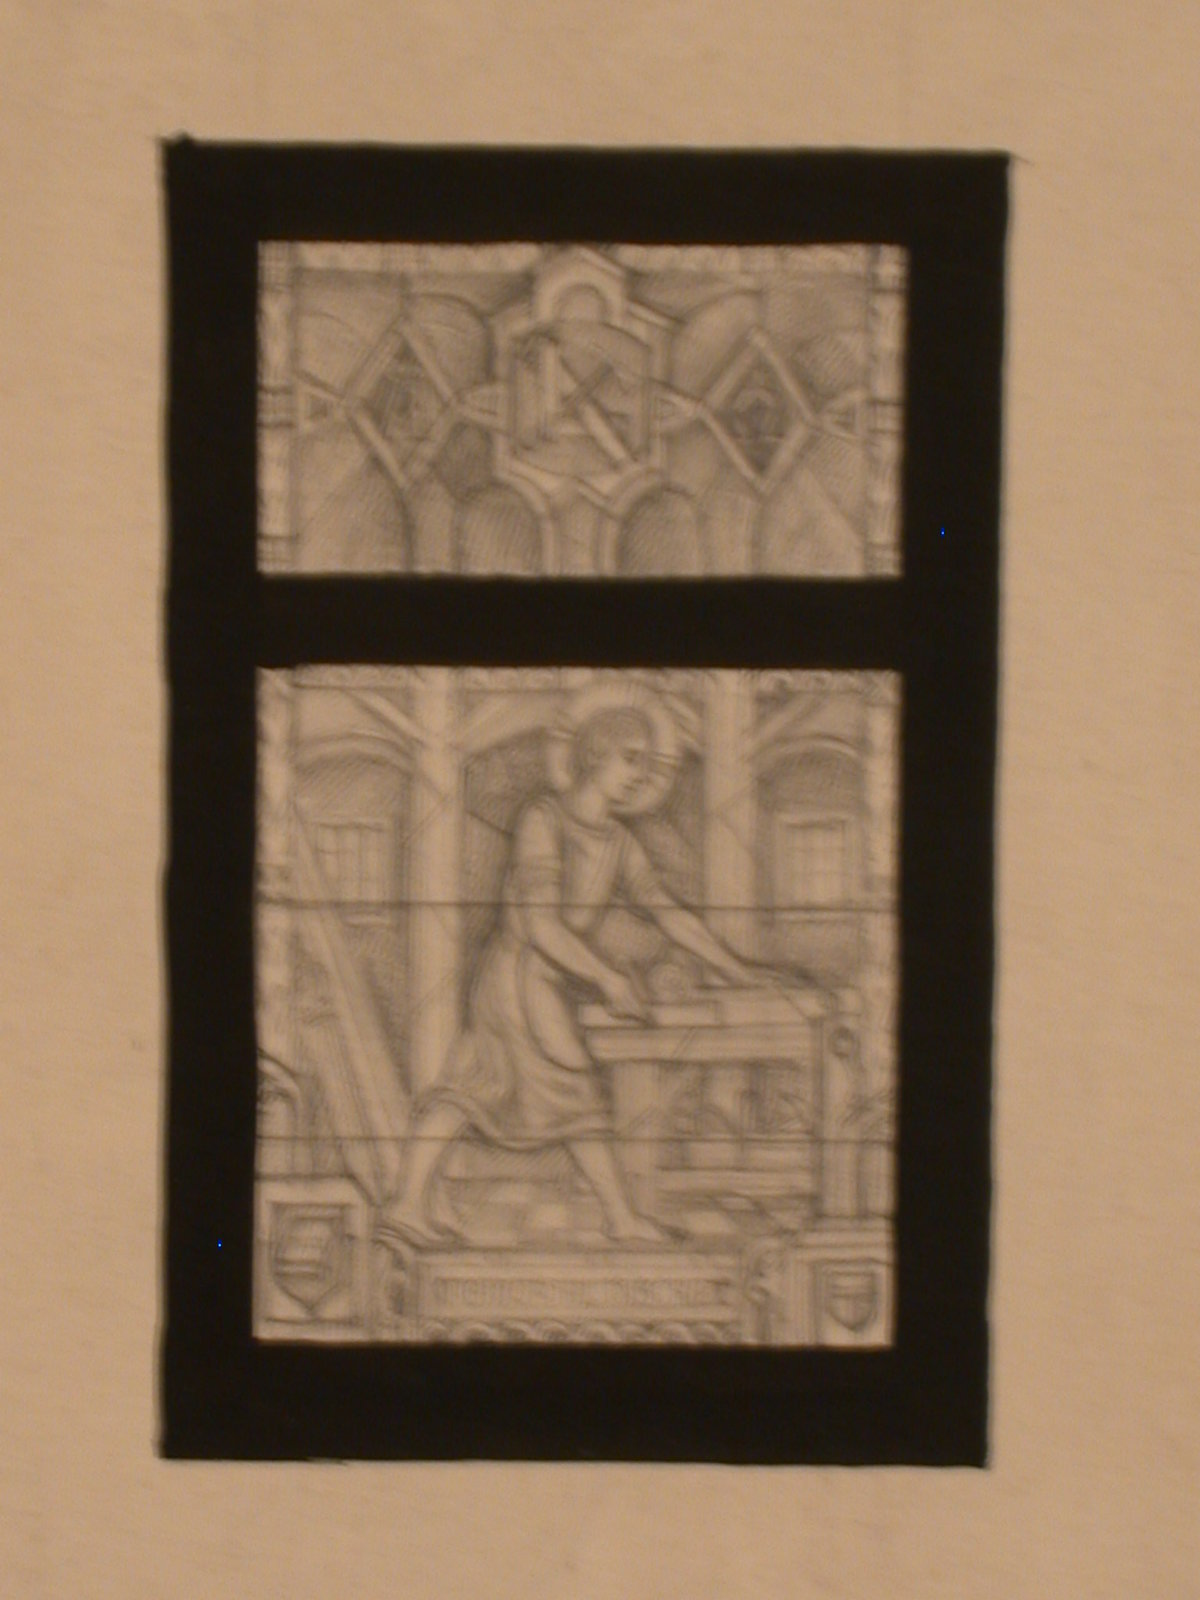 Design Drawing For Stained Glass Memorial Window Showing St Joseph